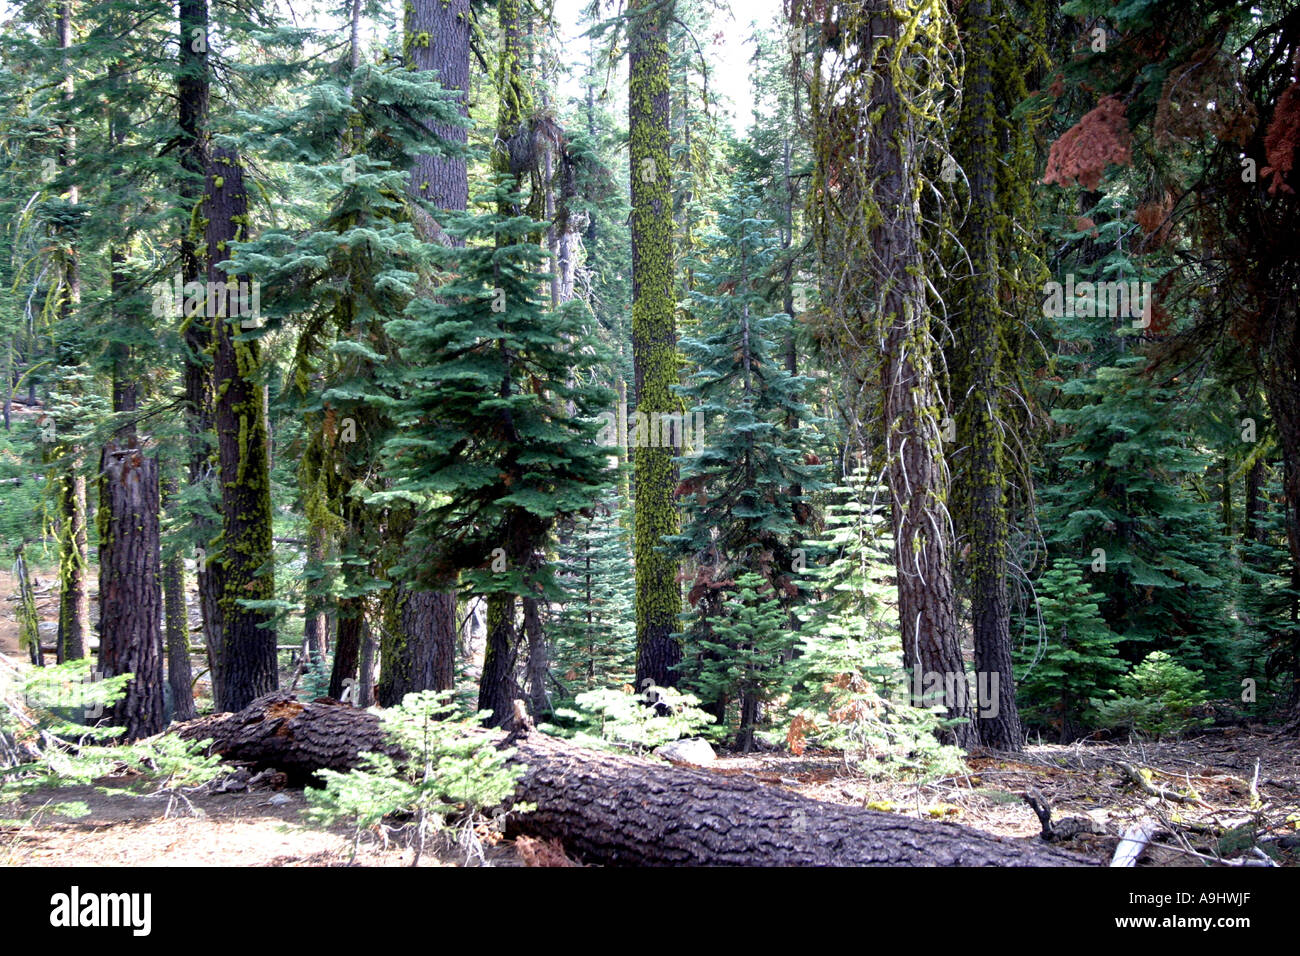 edge of the forest with Californian Red Fir, Jeffreys Pine and Silver Fir (Abies magnifica, Pinus jeffreyi, Abies - Stock Image